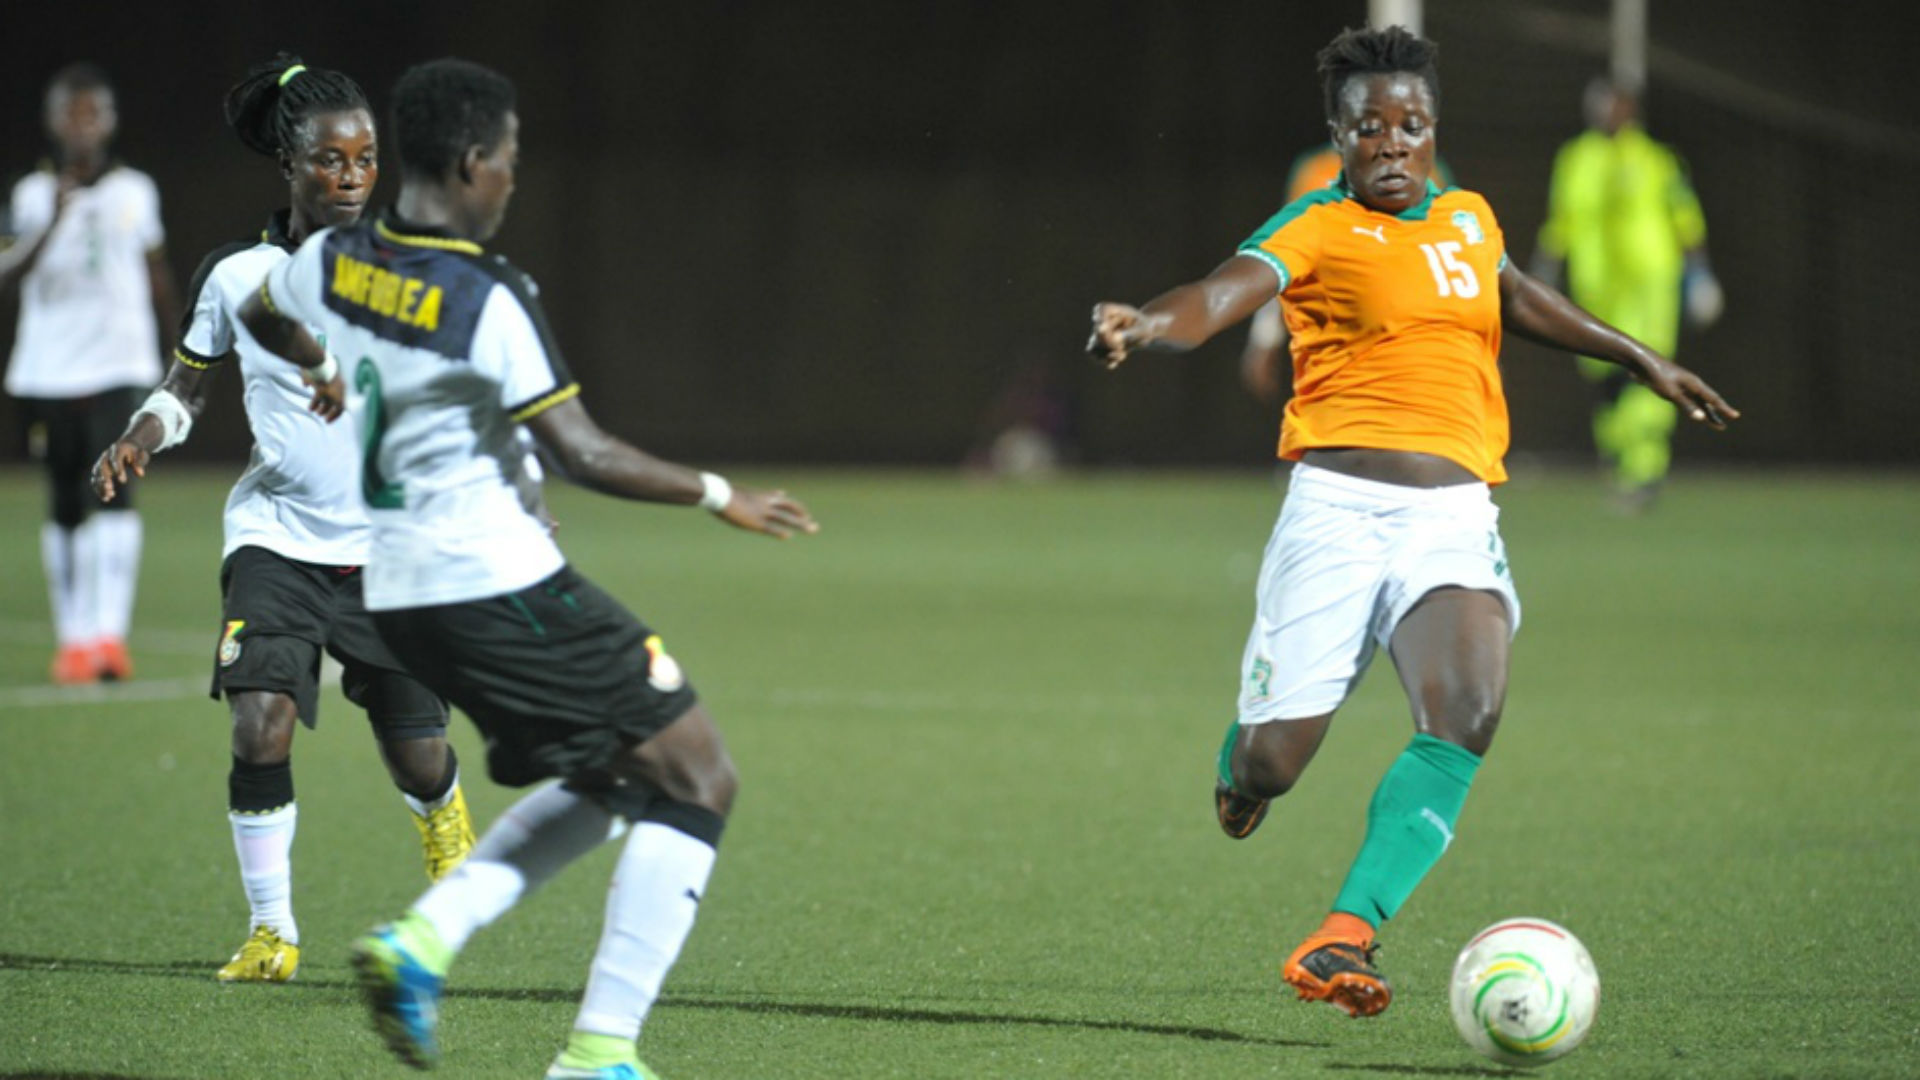 West Africa Football Union (WAFU) Women's Cup dates announced - Sports Leo